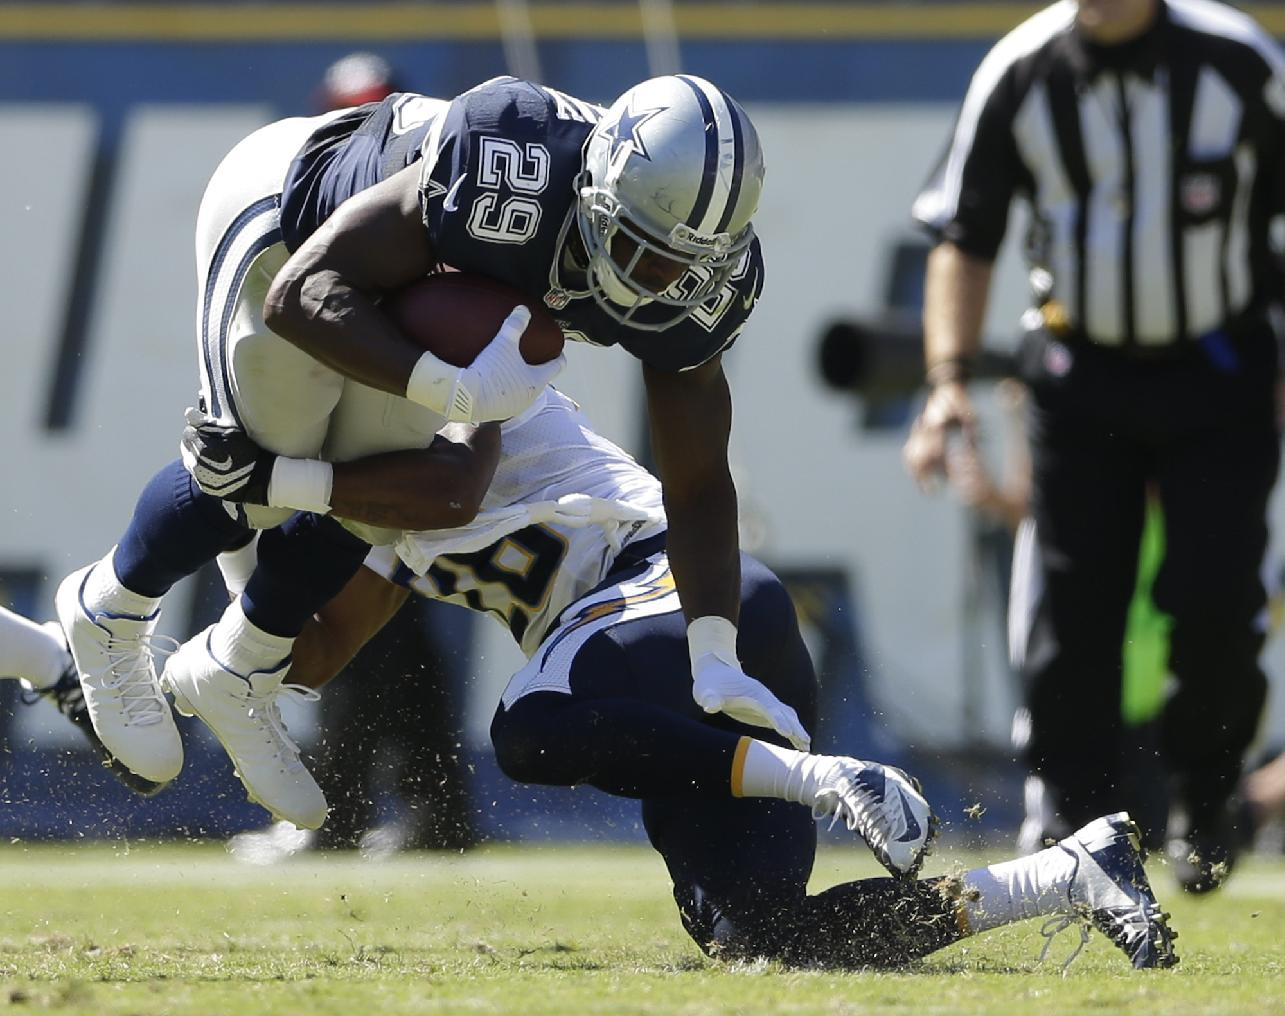 San Diego Chargers cornerback Johnny Patrick, right, tackles Dallas Cowboys running back DeMarco Murray during the first half of an NFL football game Sunday, Sept. 29, 2013, in San Diego. Patrick was hunt on the play